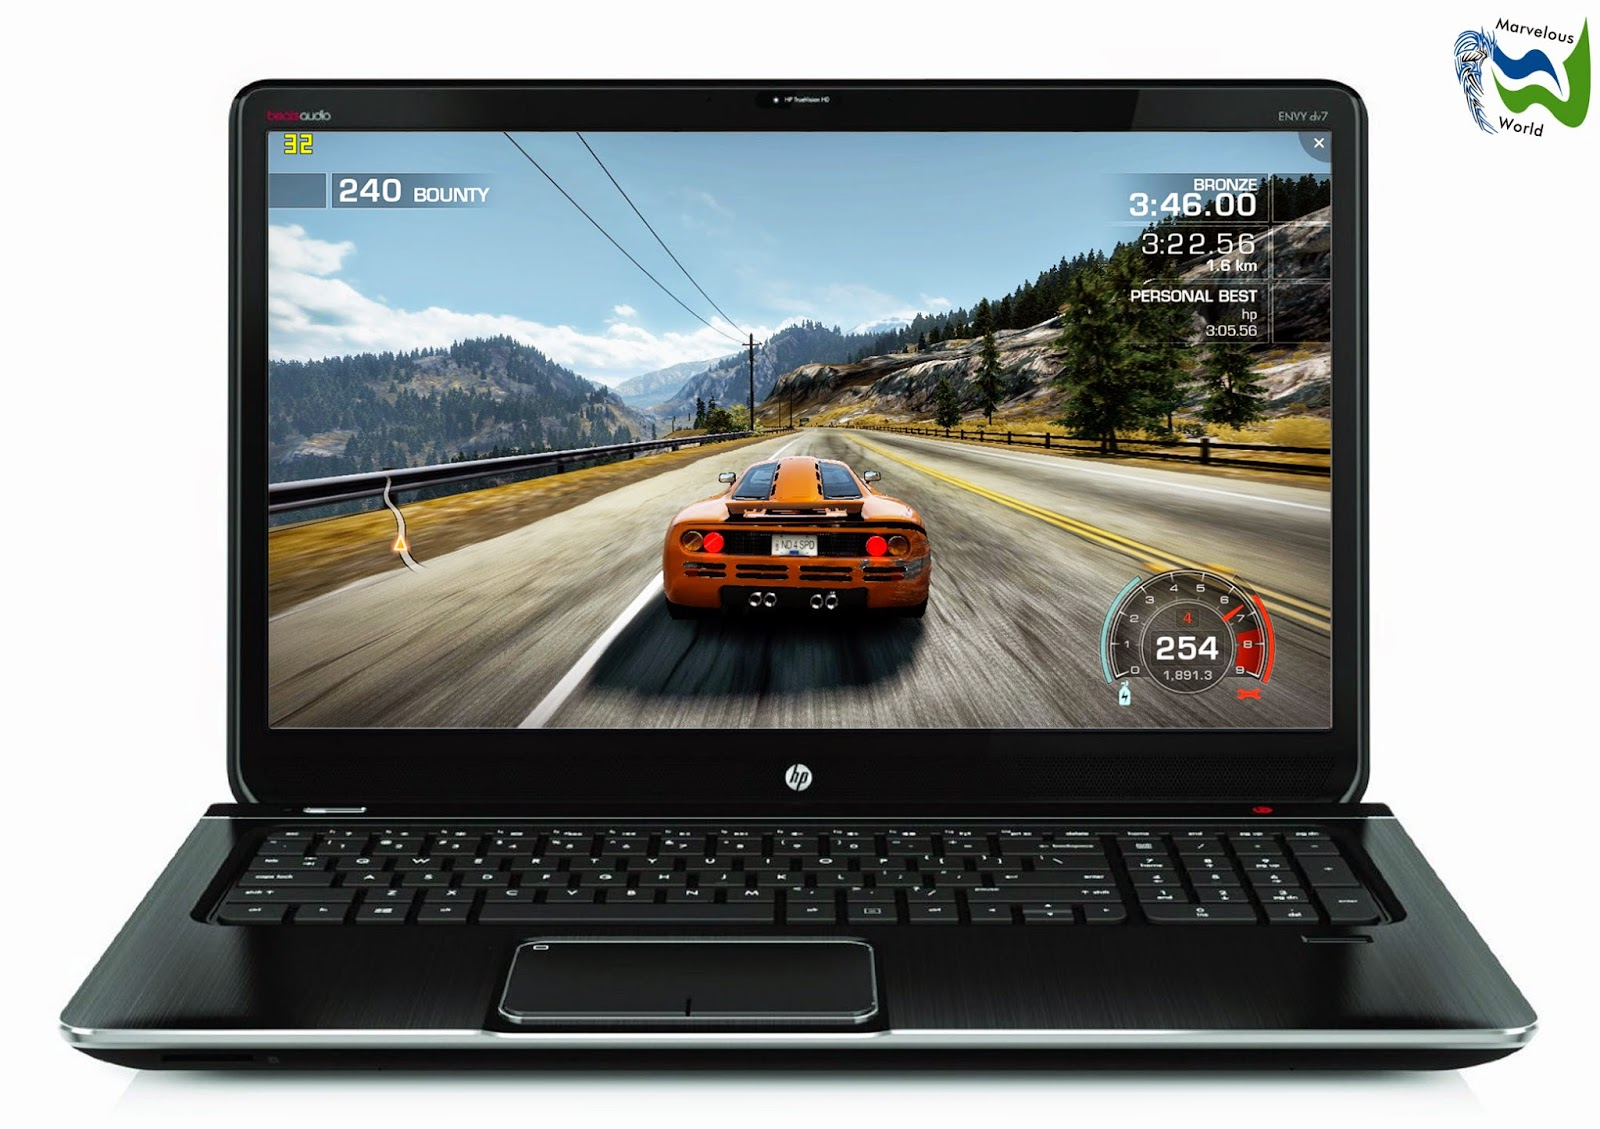 10 Best Gaming Laptop Under 1000 Dollars (February 2015)